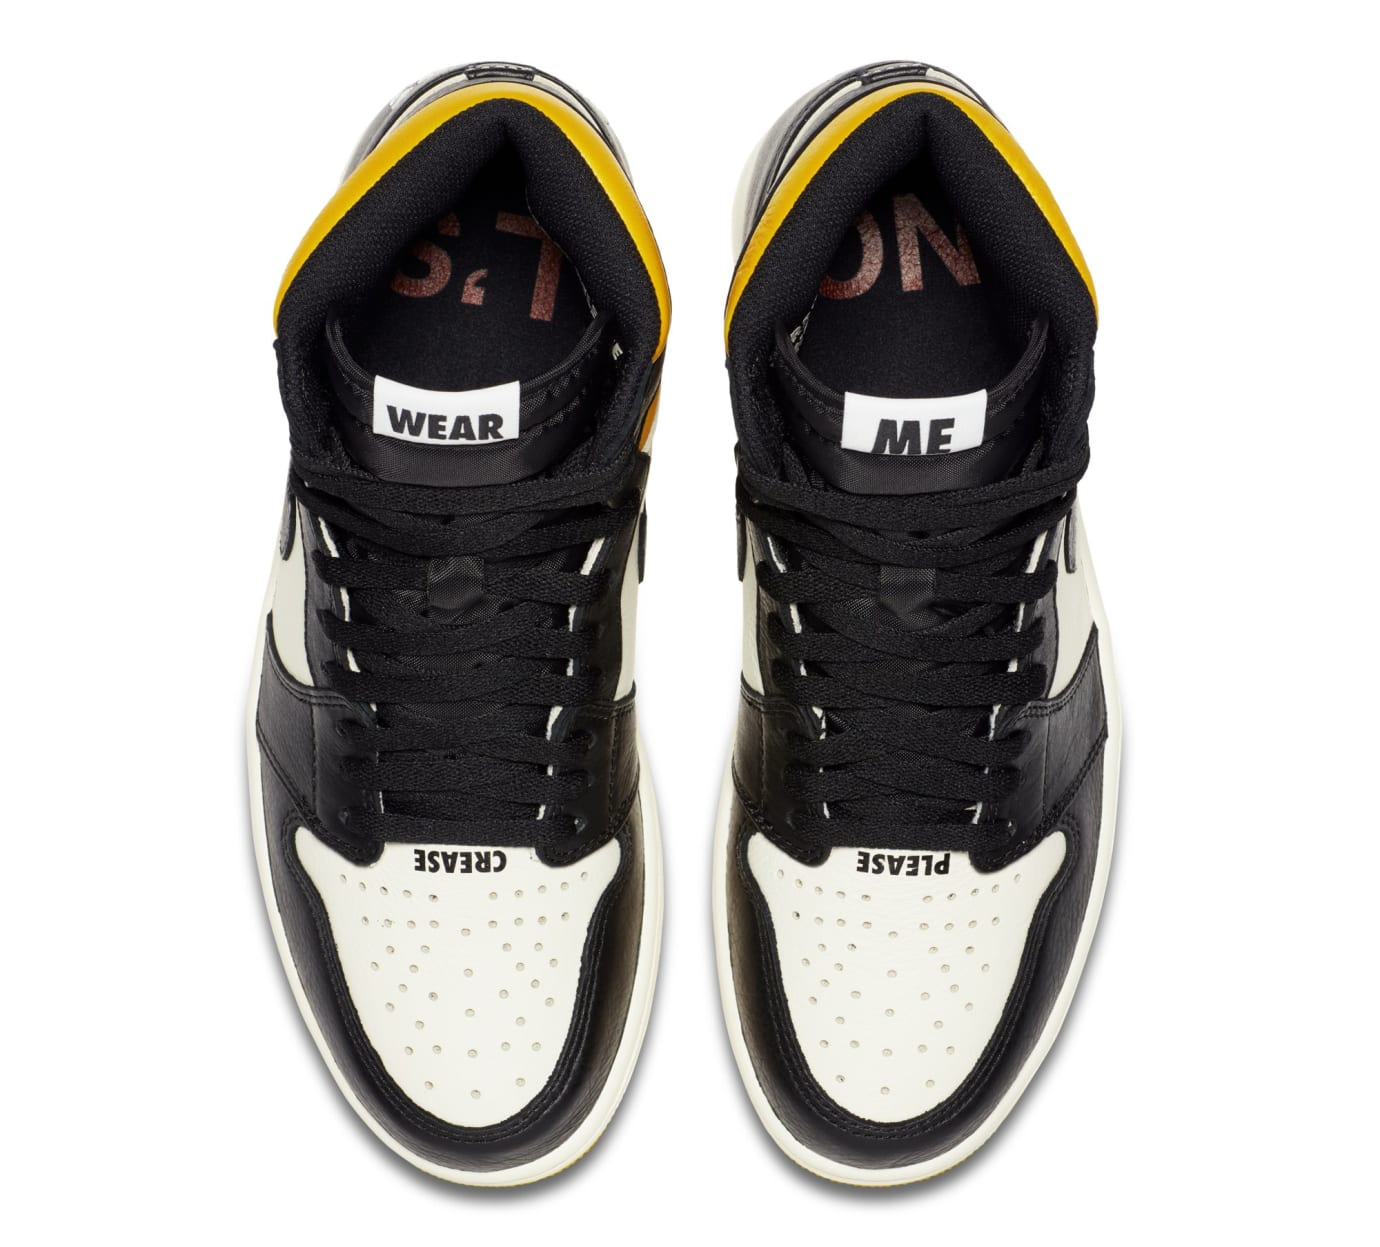 f23efa73ae0 Image via Nike Air Jordan 1 High OG  No Ls  Yellow 861428-107 (Top)